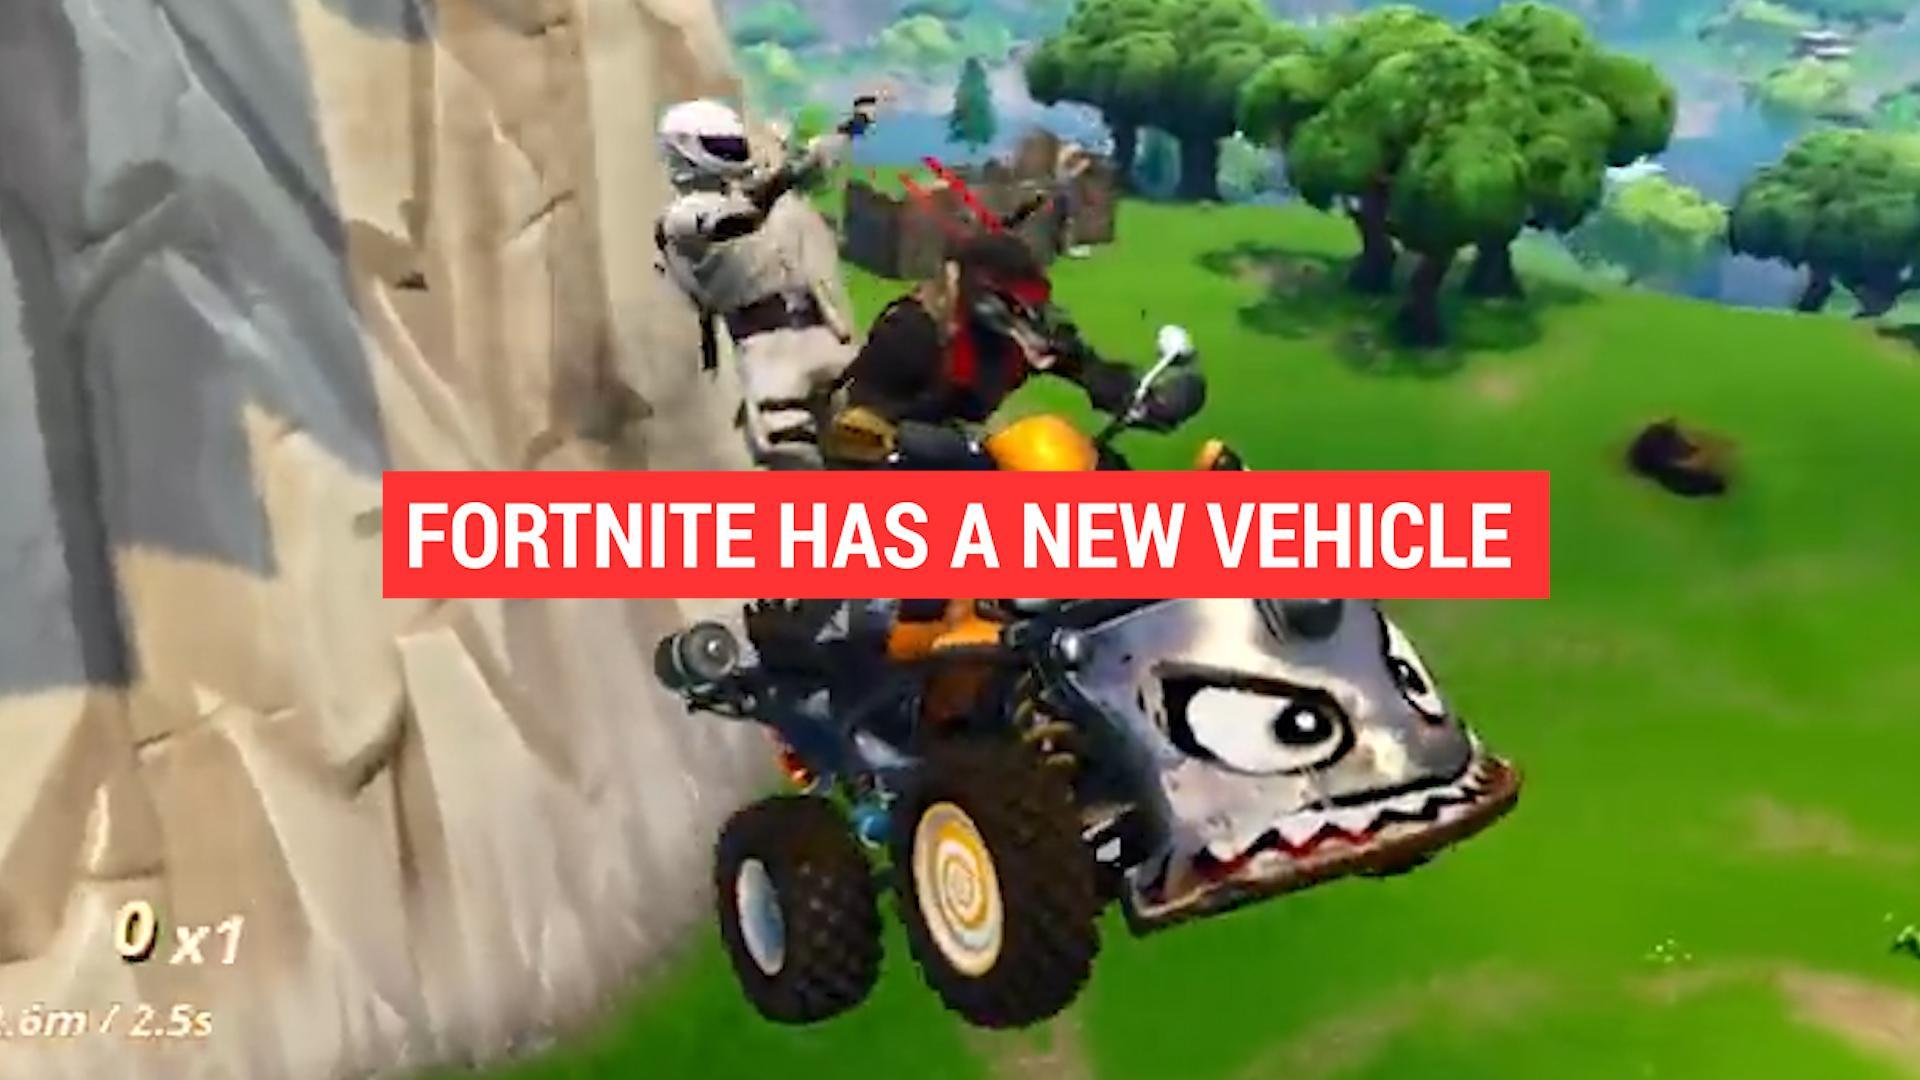 Fortnite has introduced a new vehicle